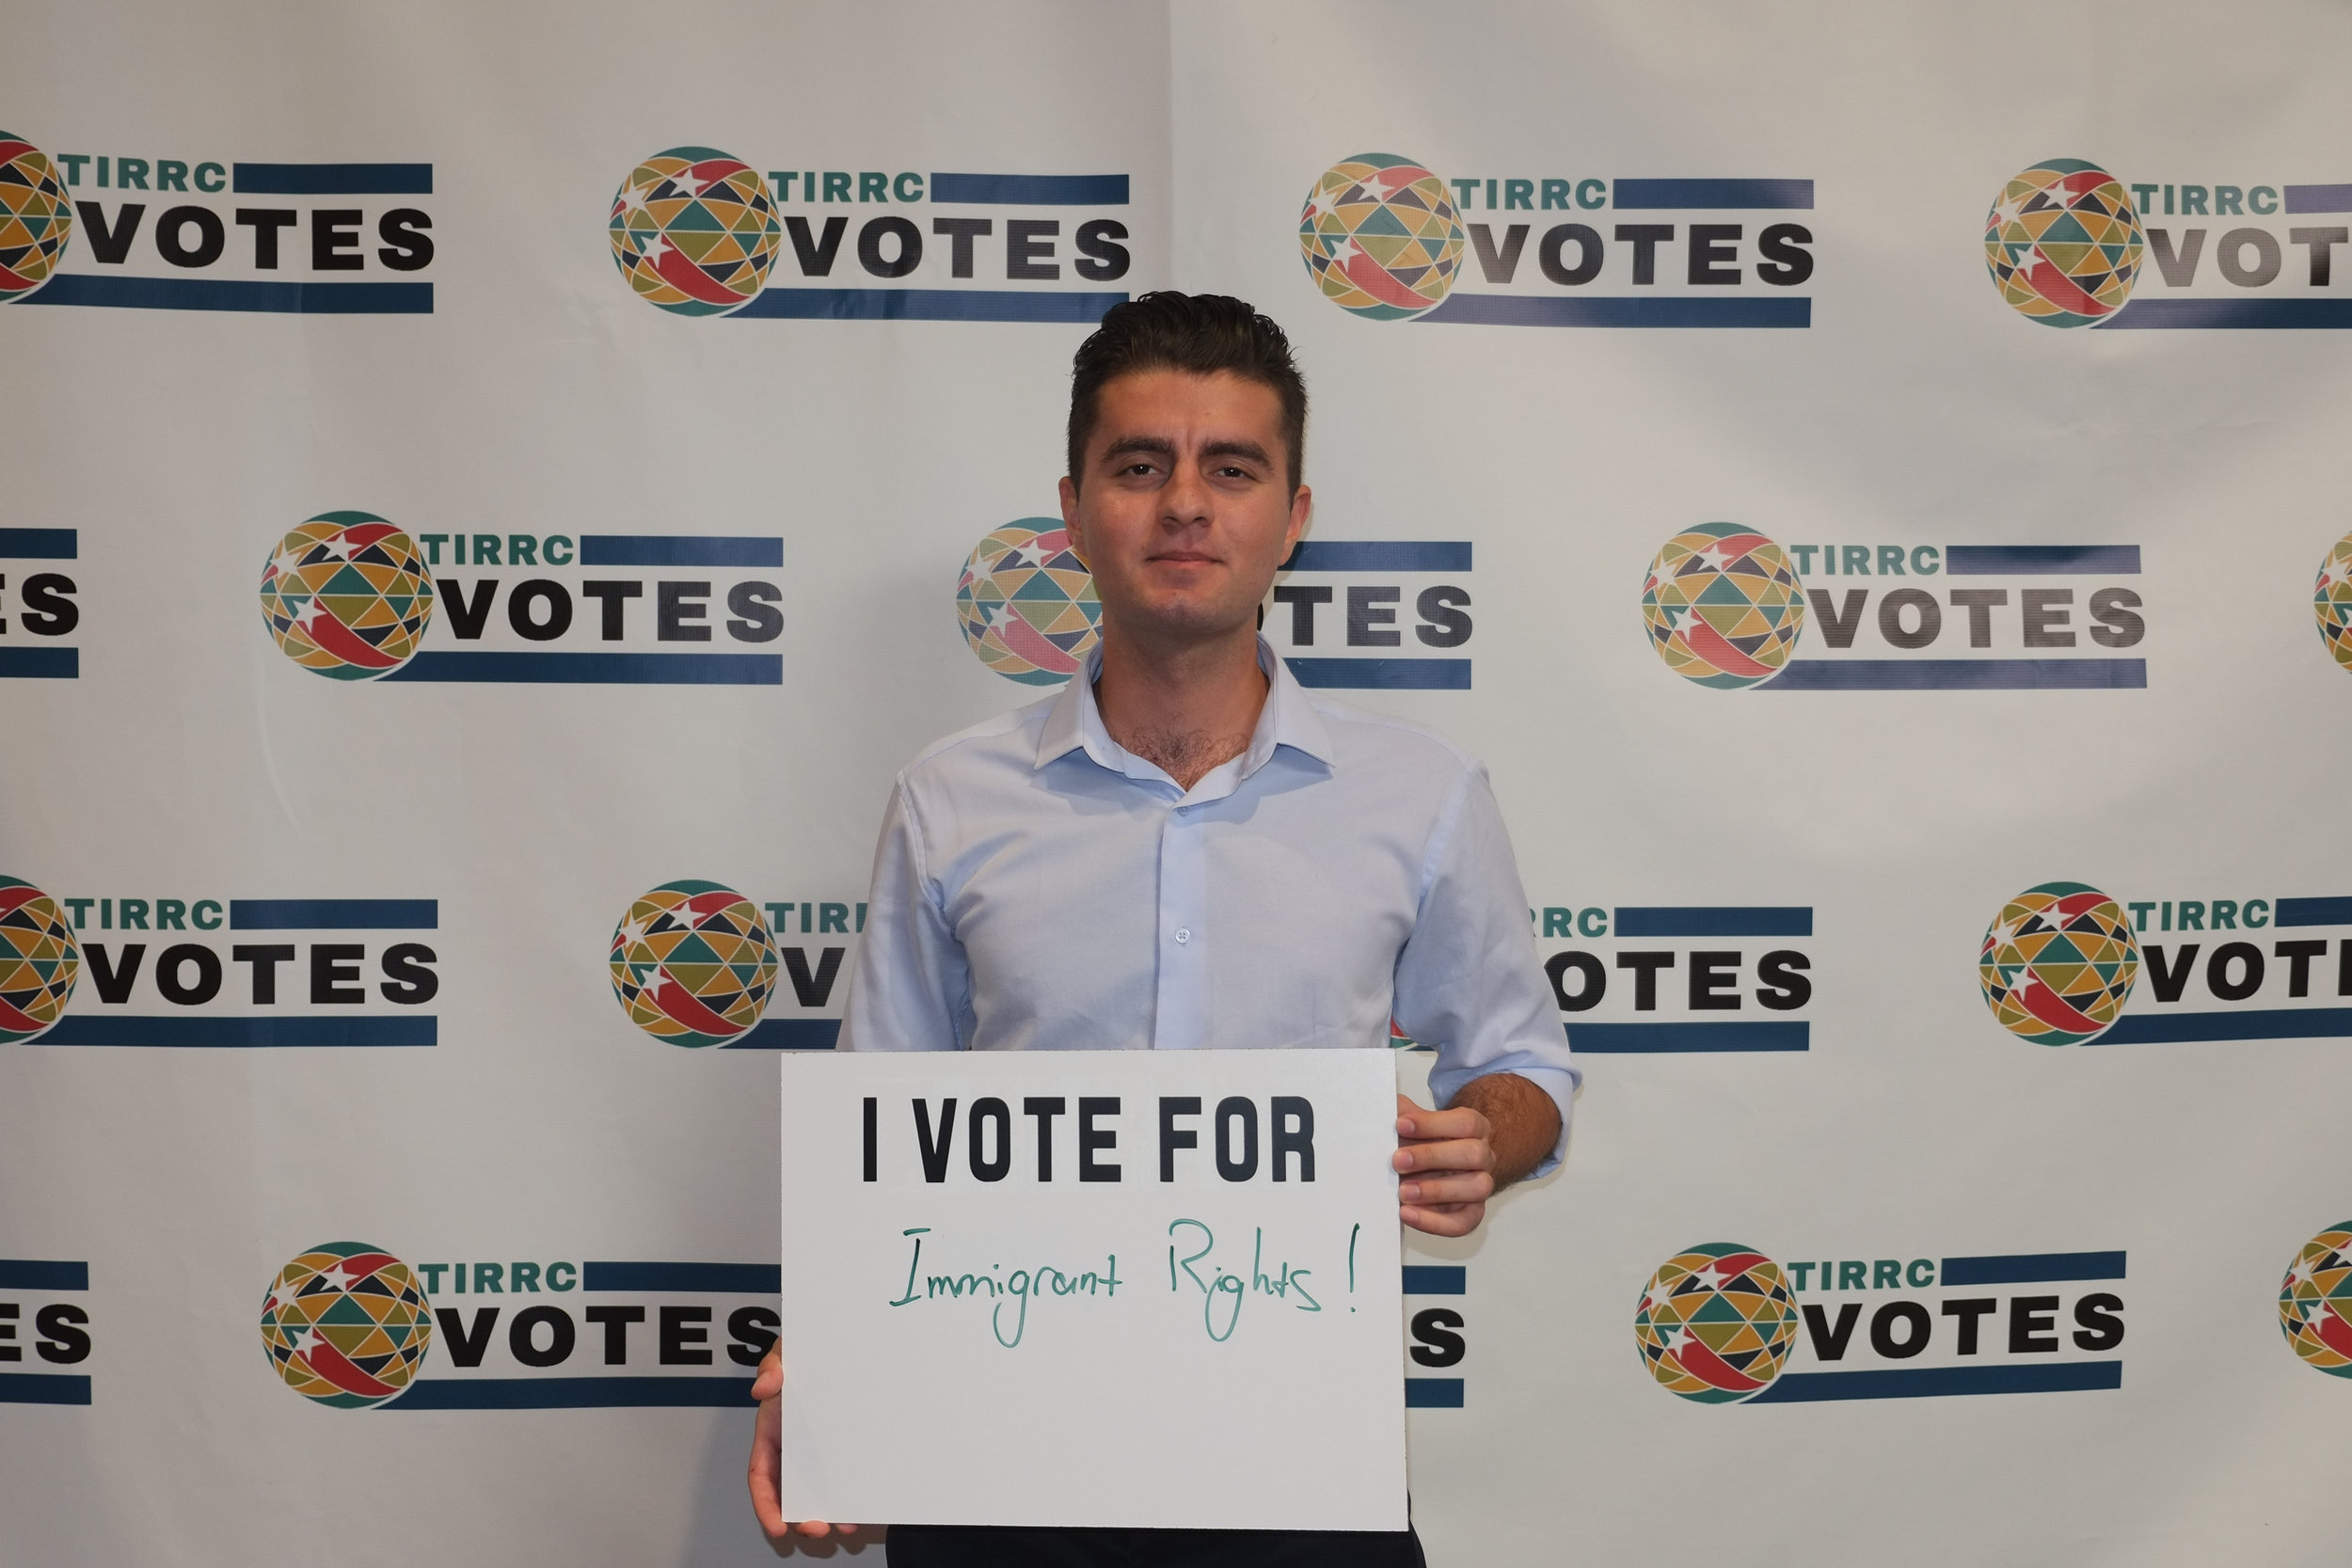 TIRRCVotes-PhotoBooth-1.jpg